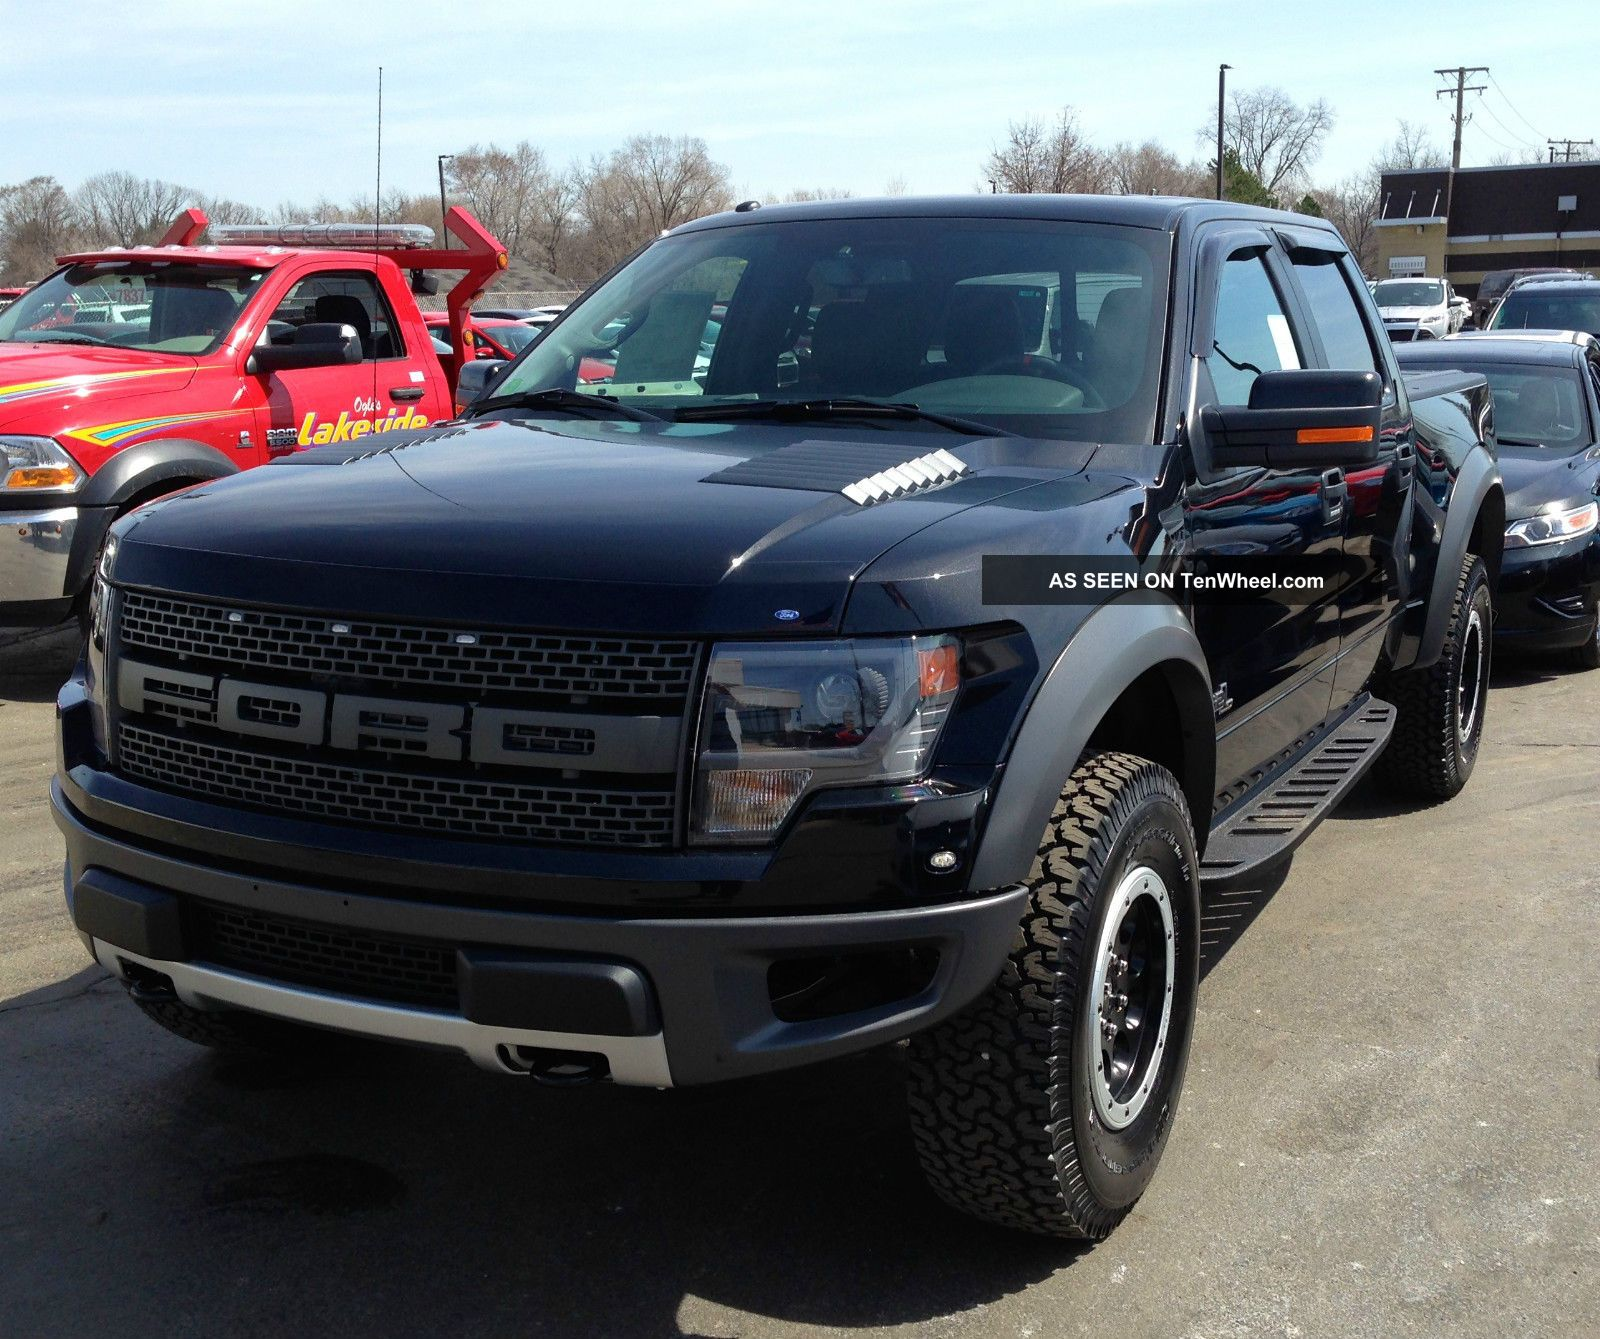 2014 ford f 150 svt raptor html autos post big dog service manual download big dog k9 service manual